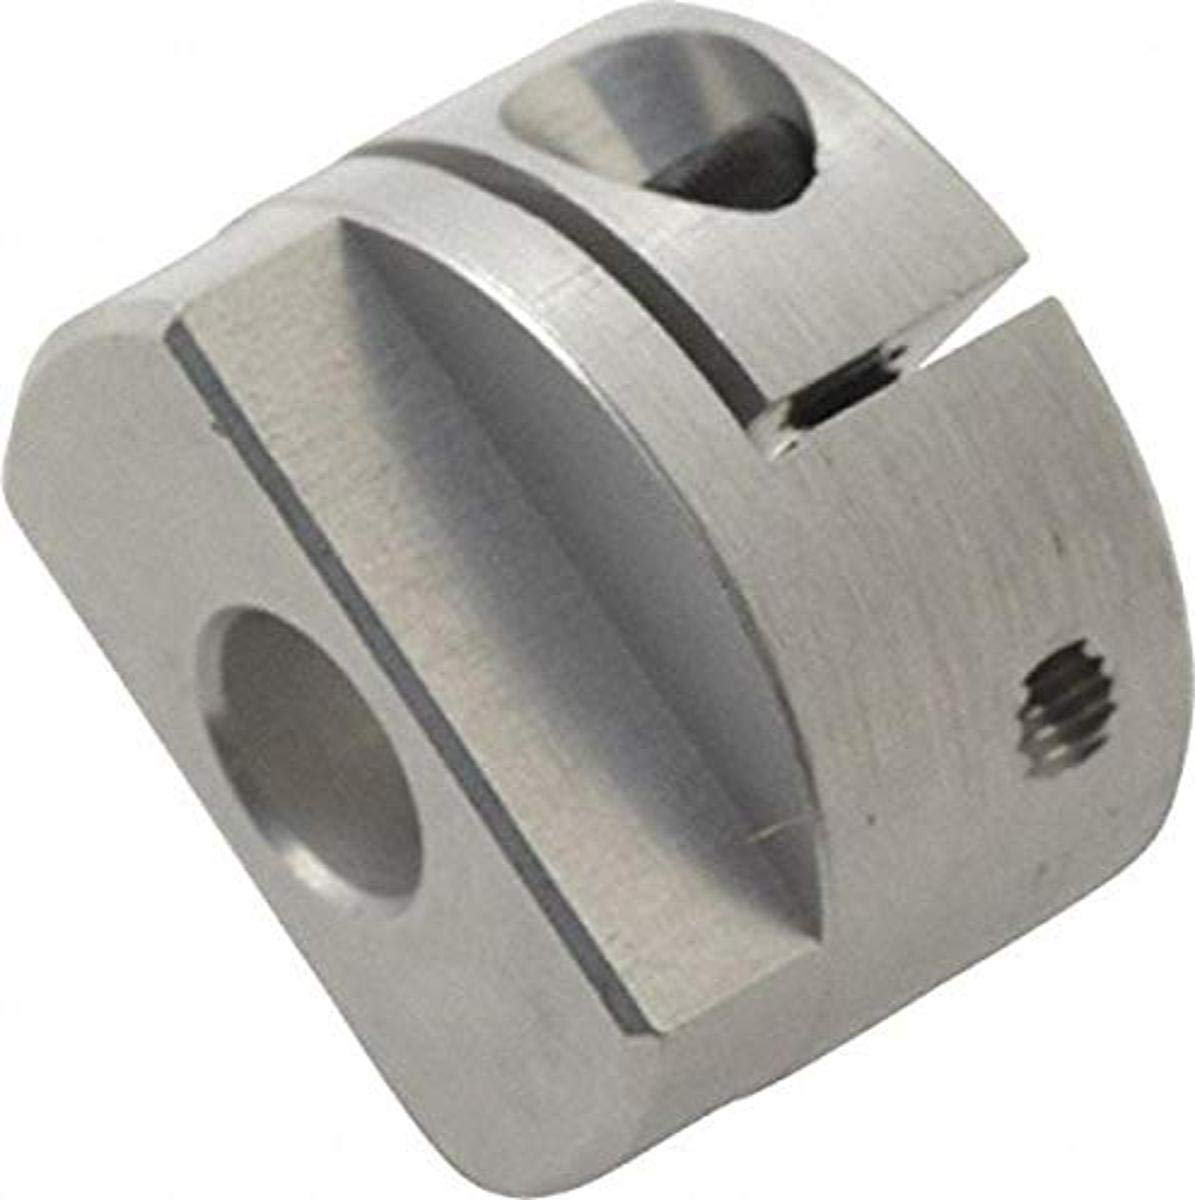 Lovejoy 58615 Size MOL25C Oldham 0. cheap Inch Aluminum Clamp Max 81% OFF Style